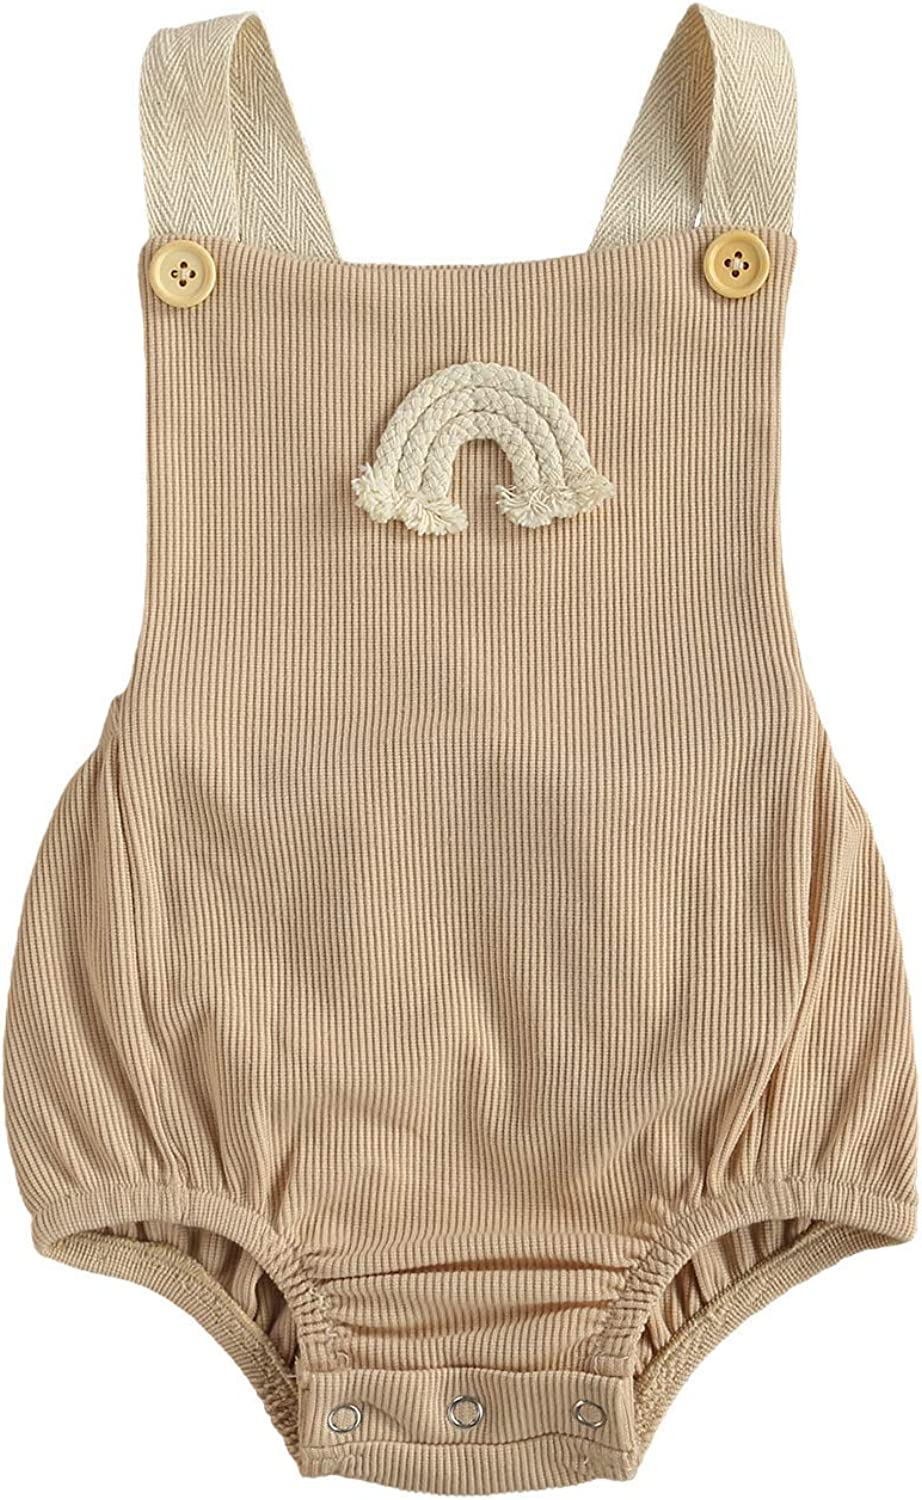 Infant Indefinitely Baby Boy Girl Rainbow Romper Outlet sale feature Halter Sleeveless Backless B